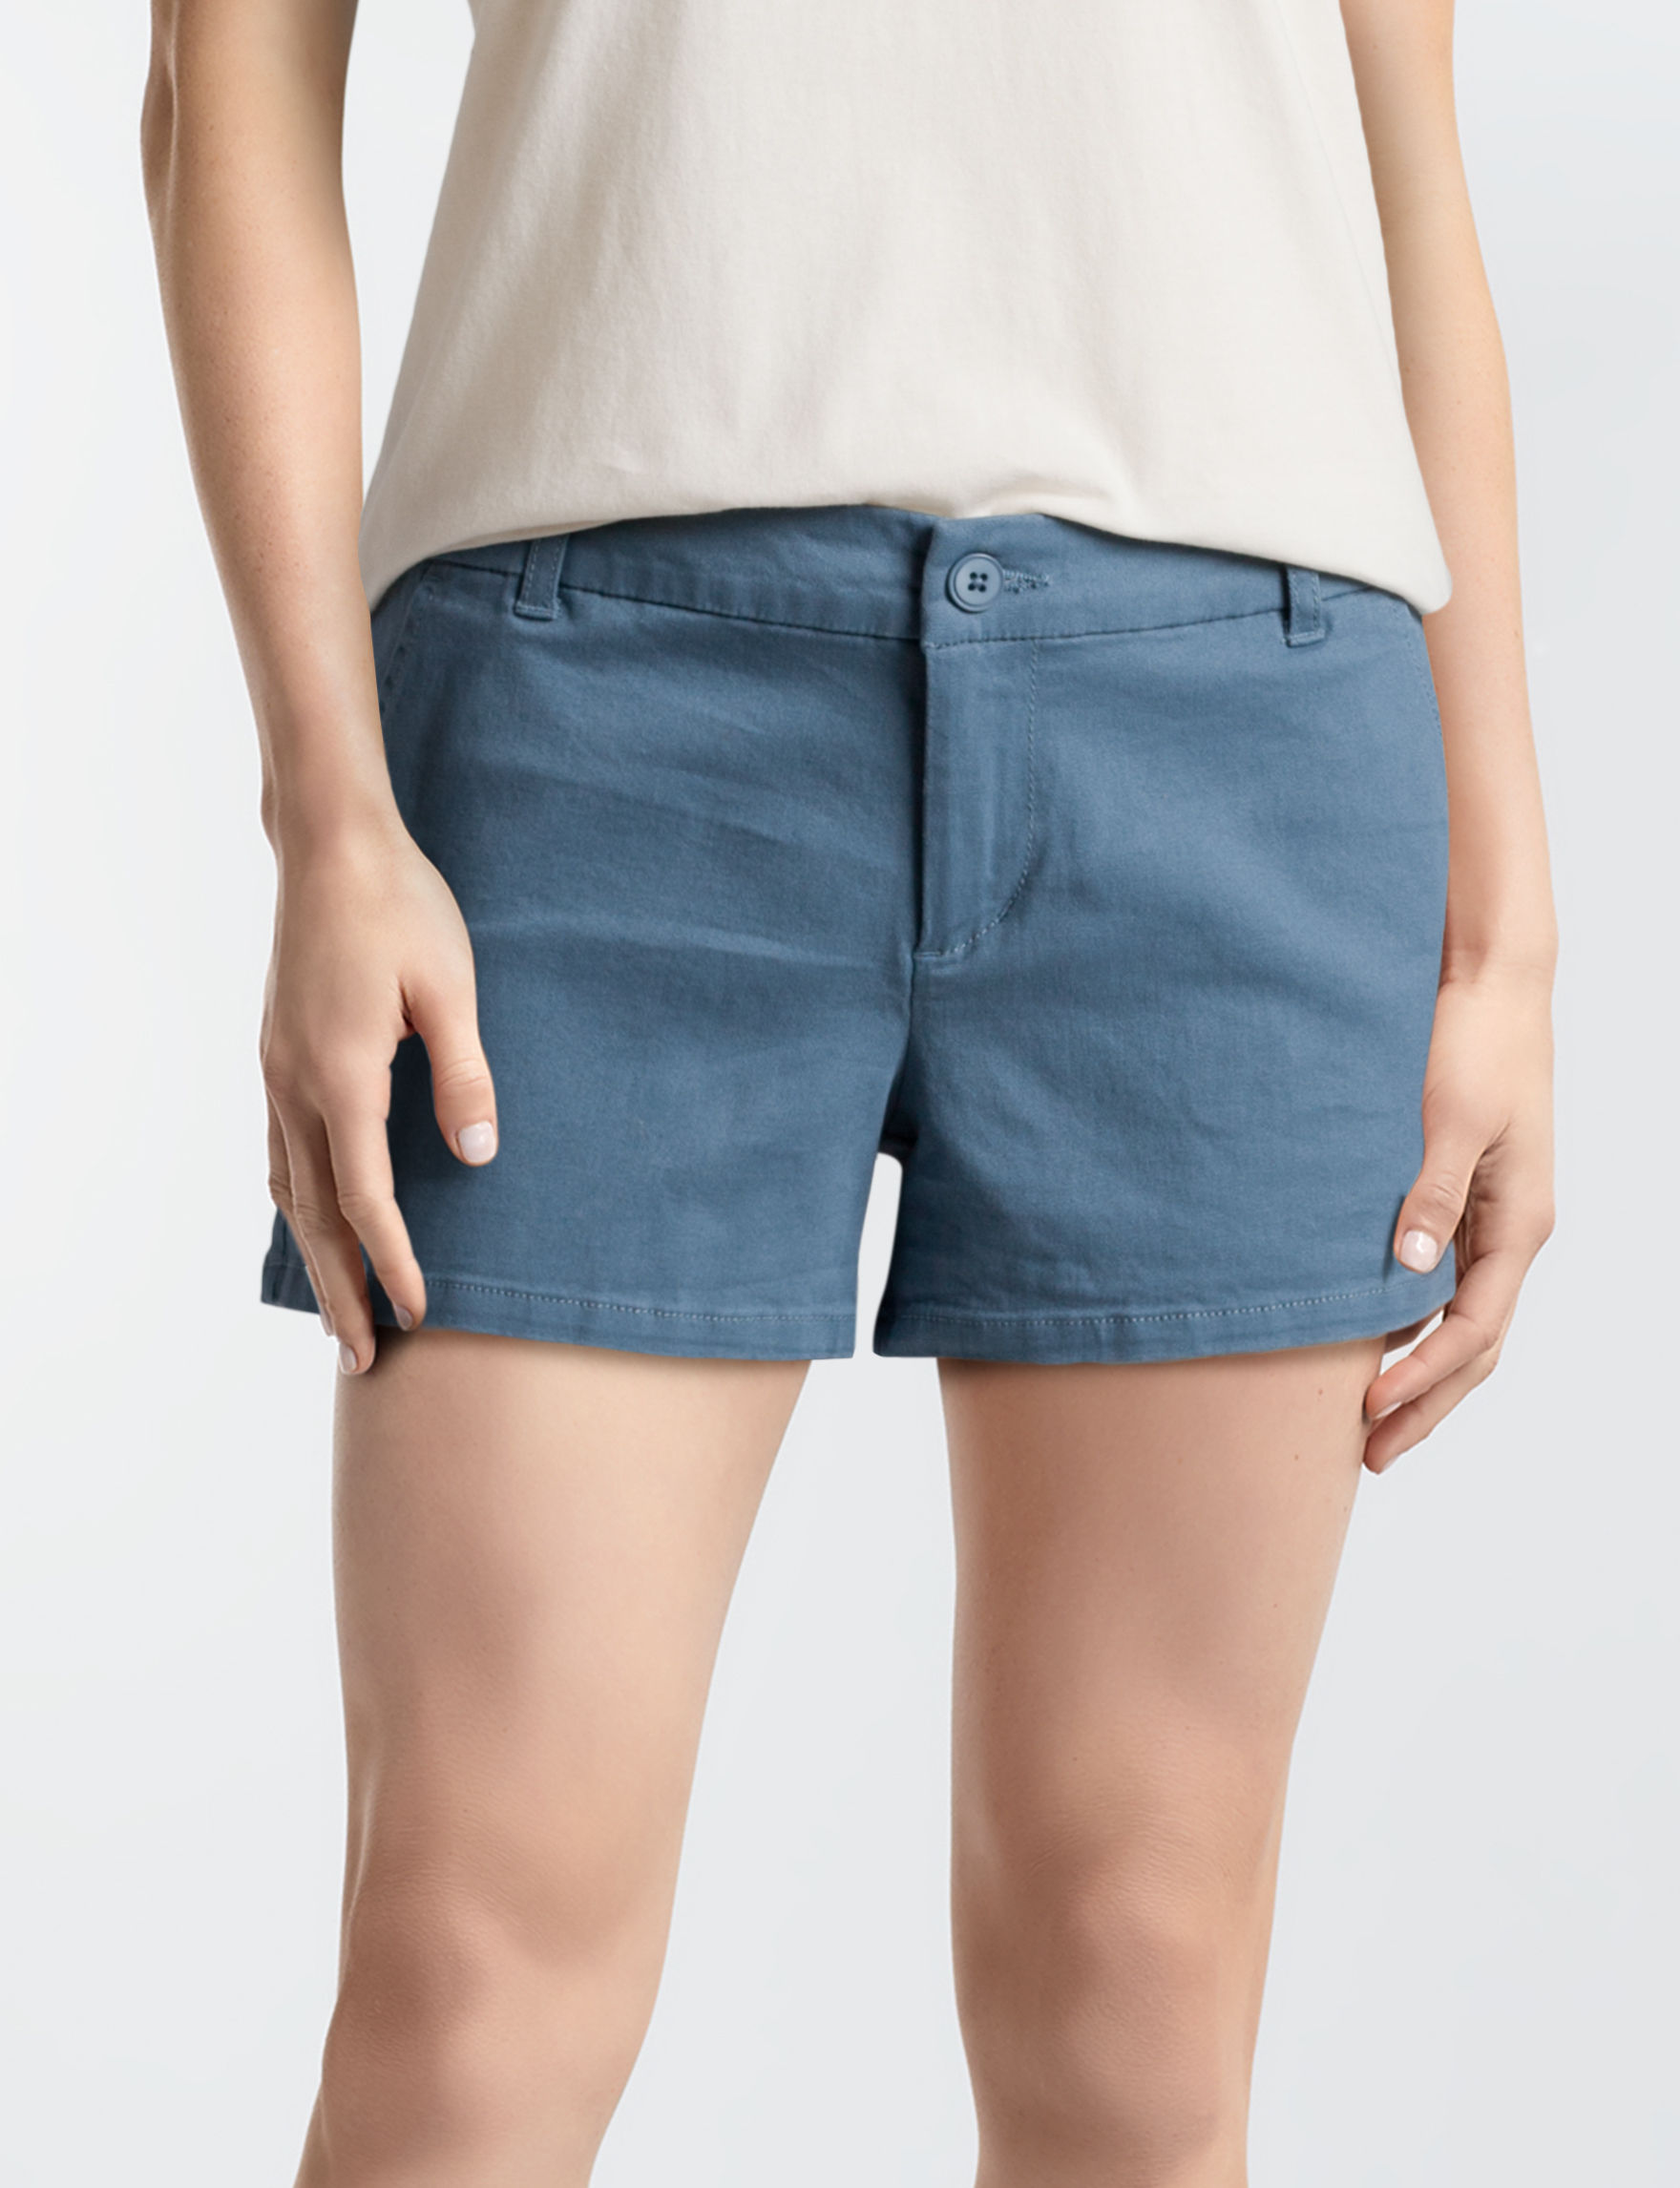 Wishful Park Slate Classic Tailored Shorts